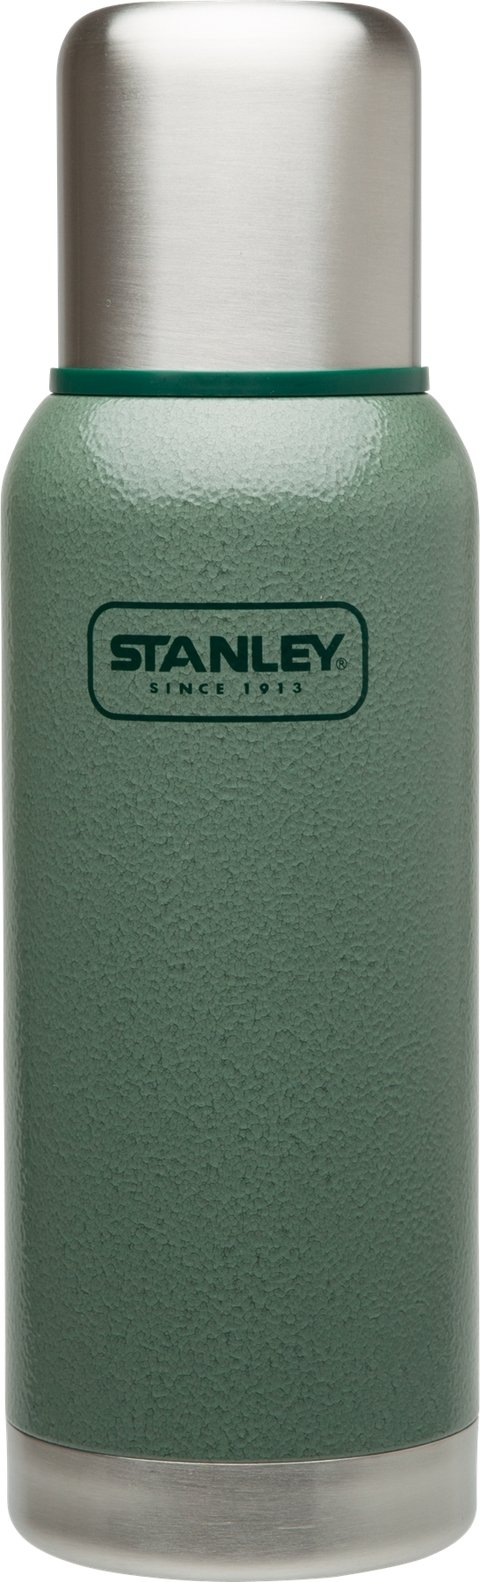 Termo Clasico Stanley 750ml Acero Inoxidable Adventure